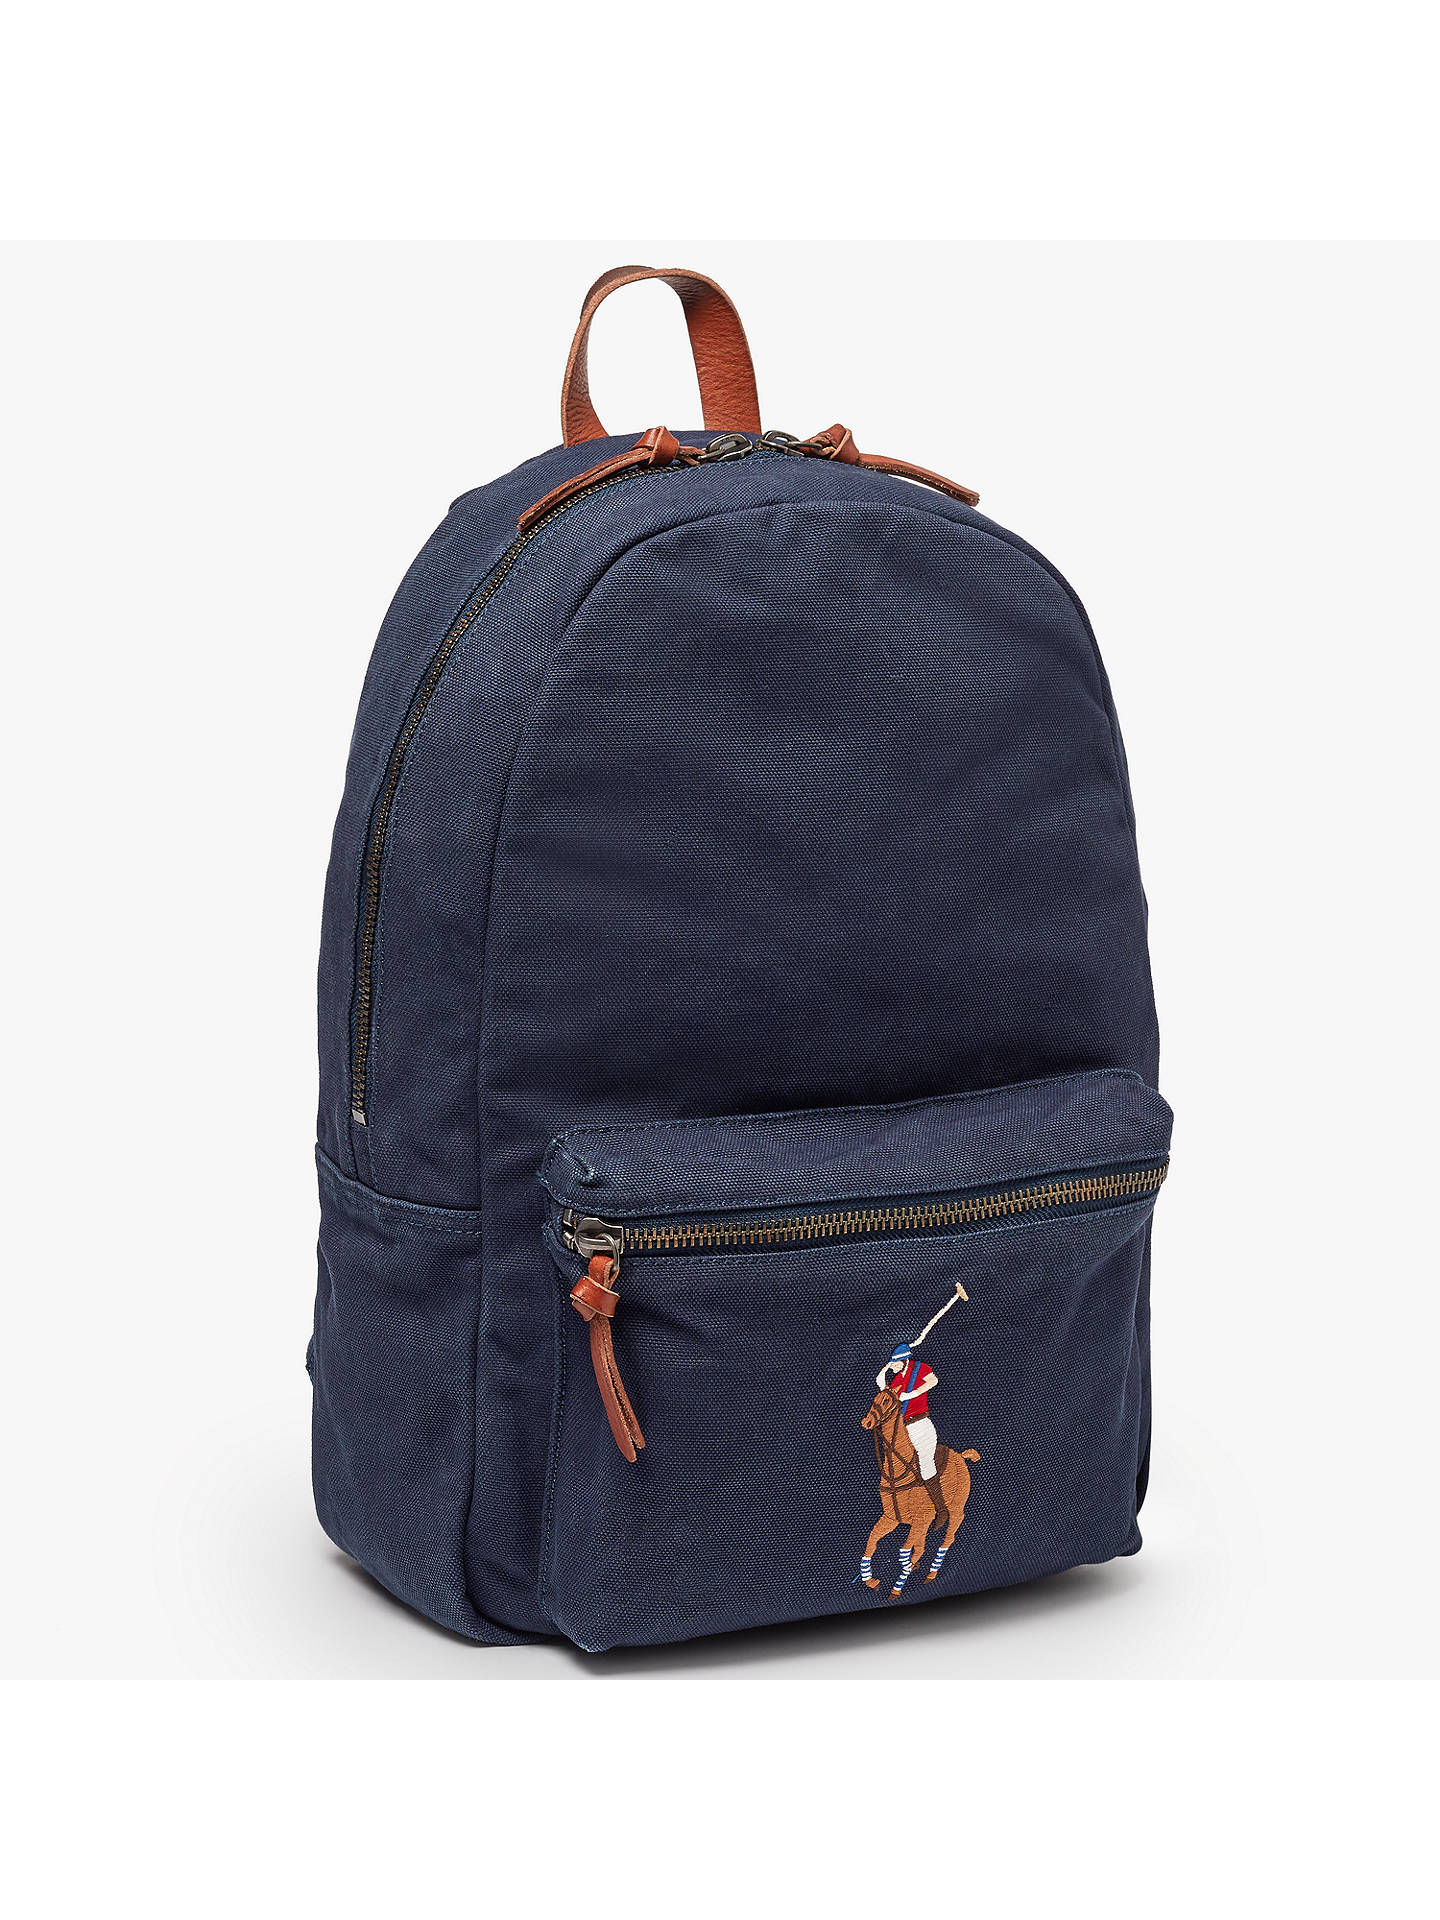 BuyPolo Ralph Lauren Canvas Big Pony Backpack 98cc4837527ab